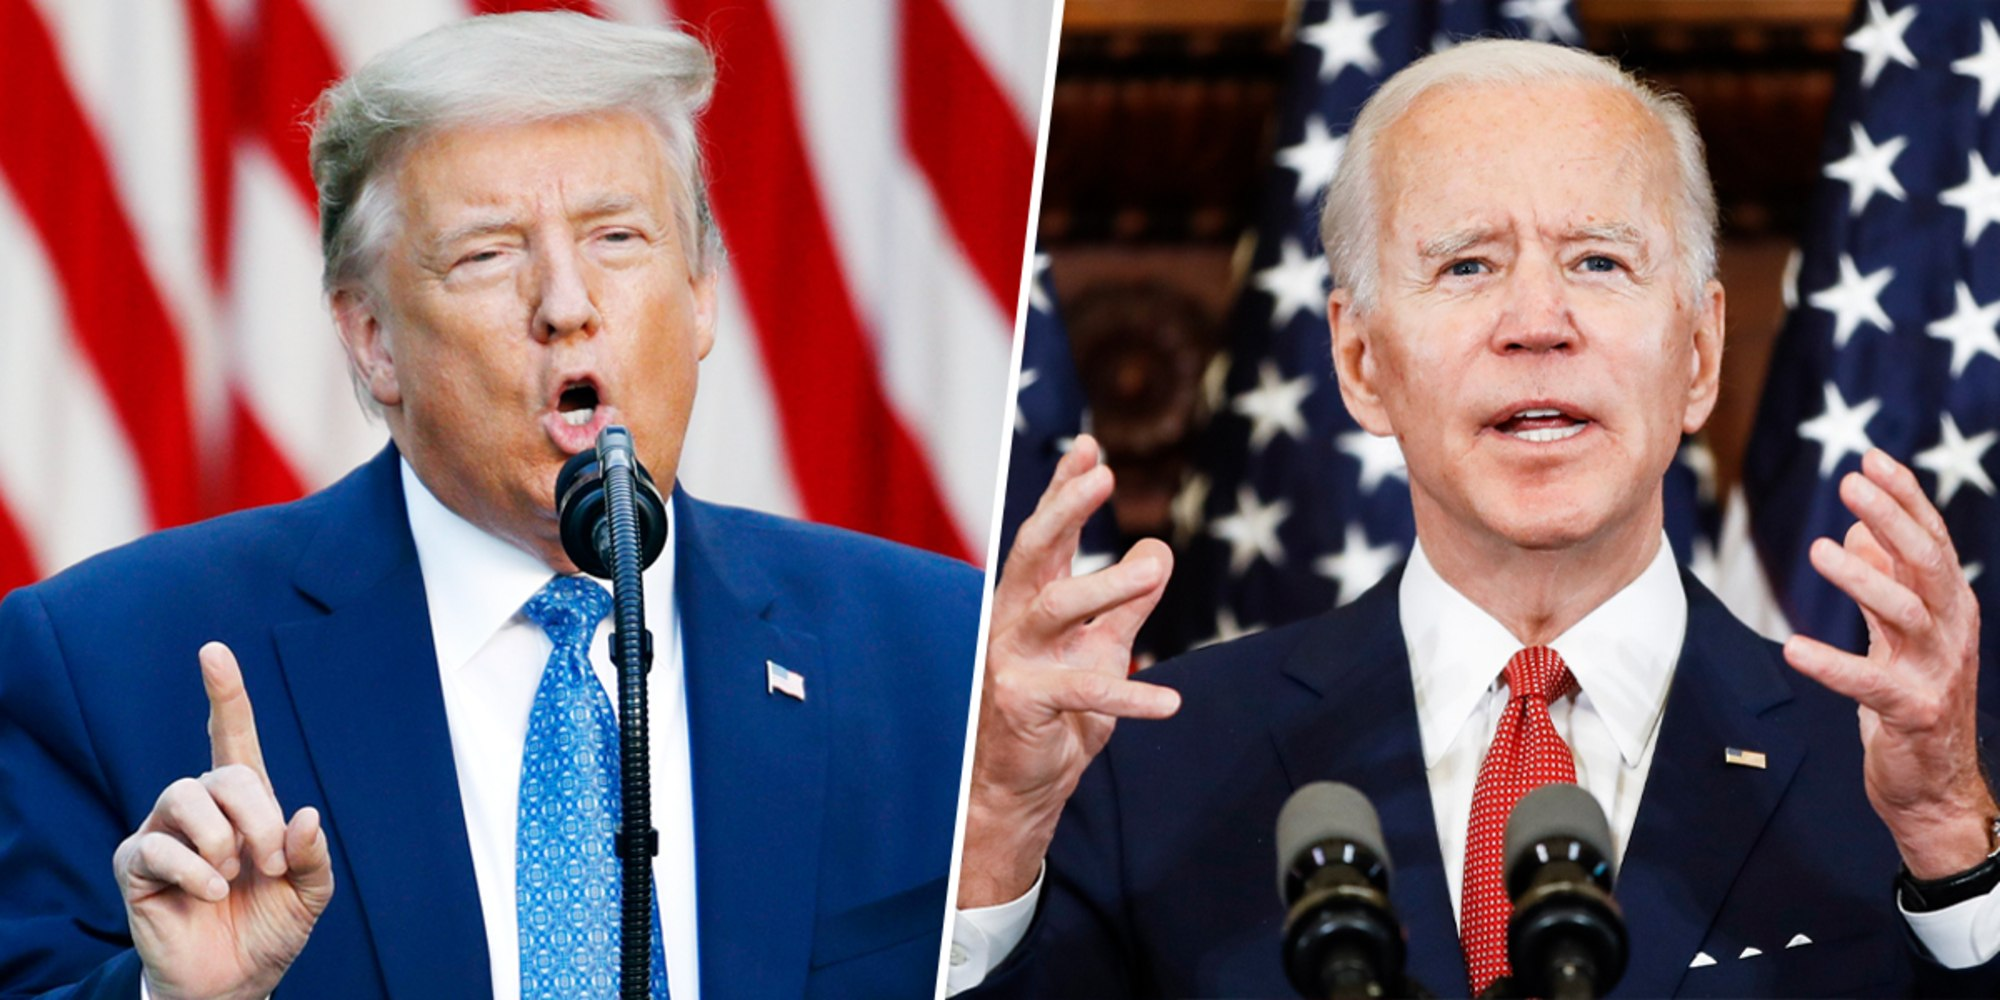 As unrest grips the U.S., Trump fuels a fire Biden pledges to extinguish